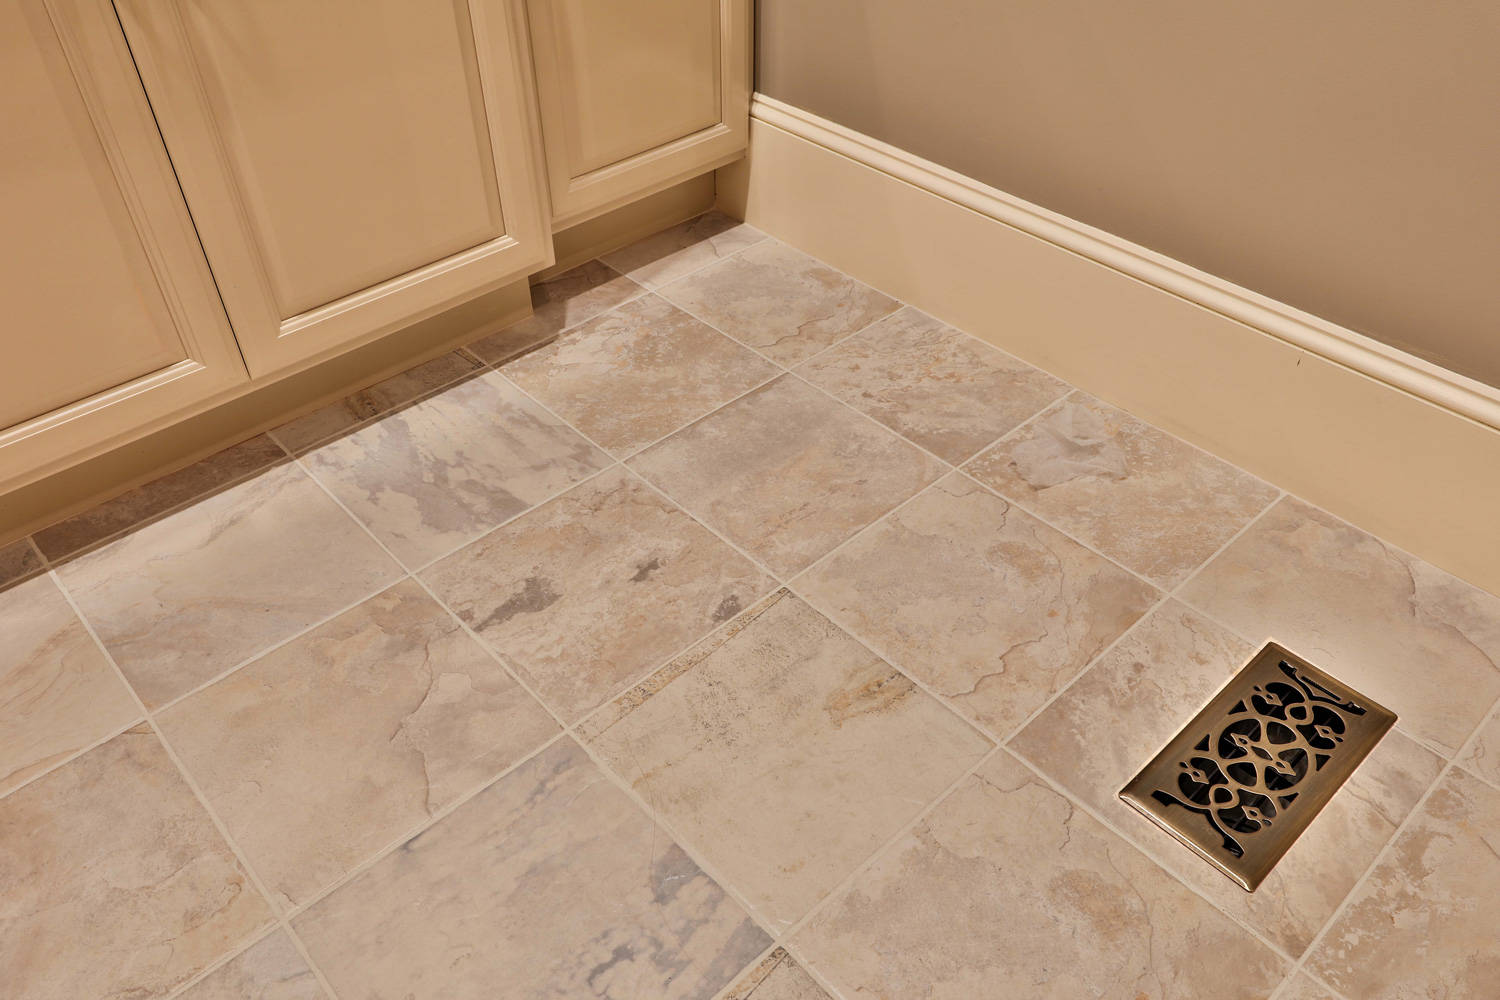 Tile flooring in the laundry room and bath.